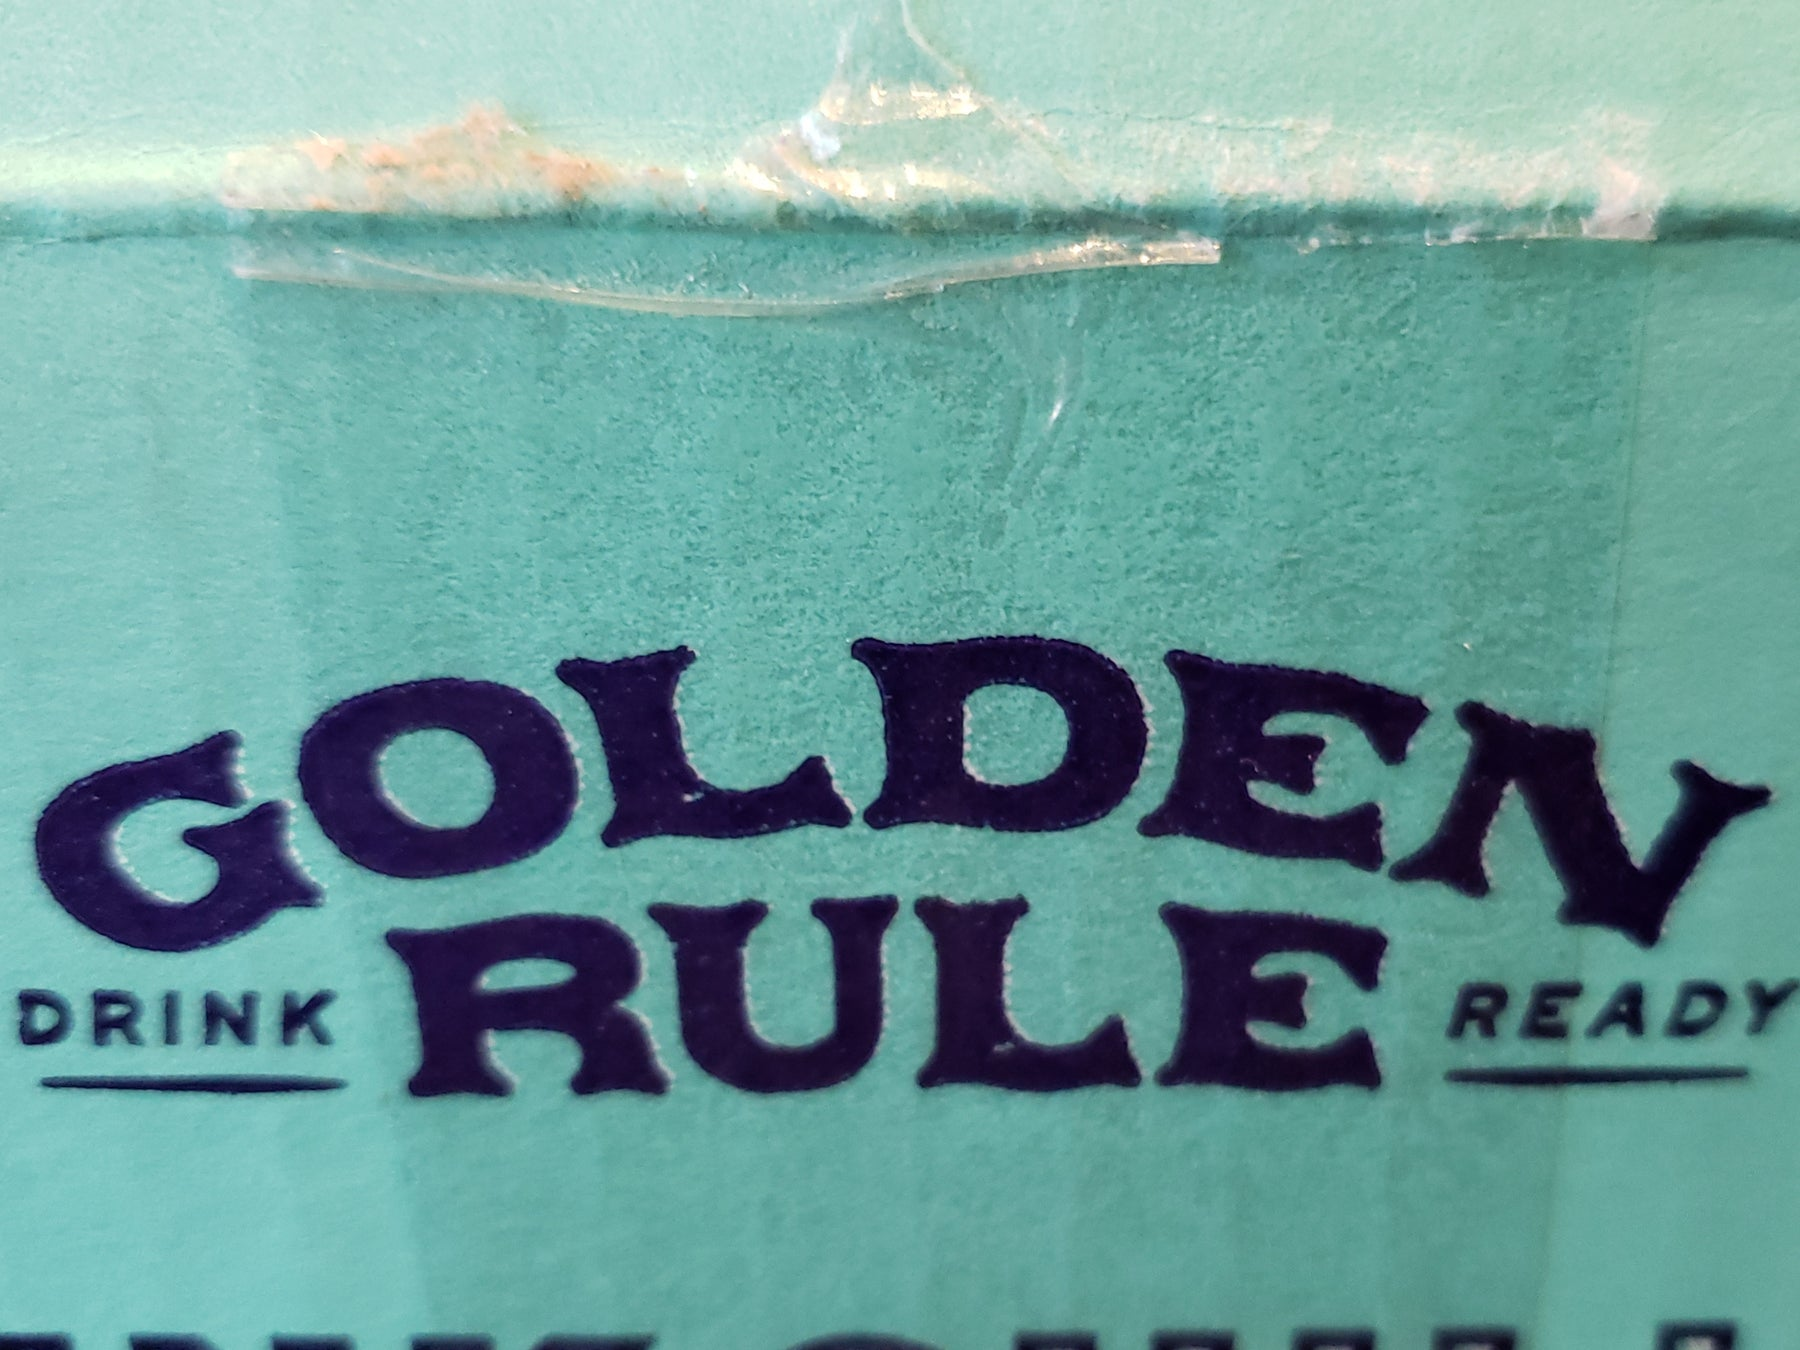 Golden Rule | Free Tasting Friday, March 13th 5-7pm